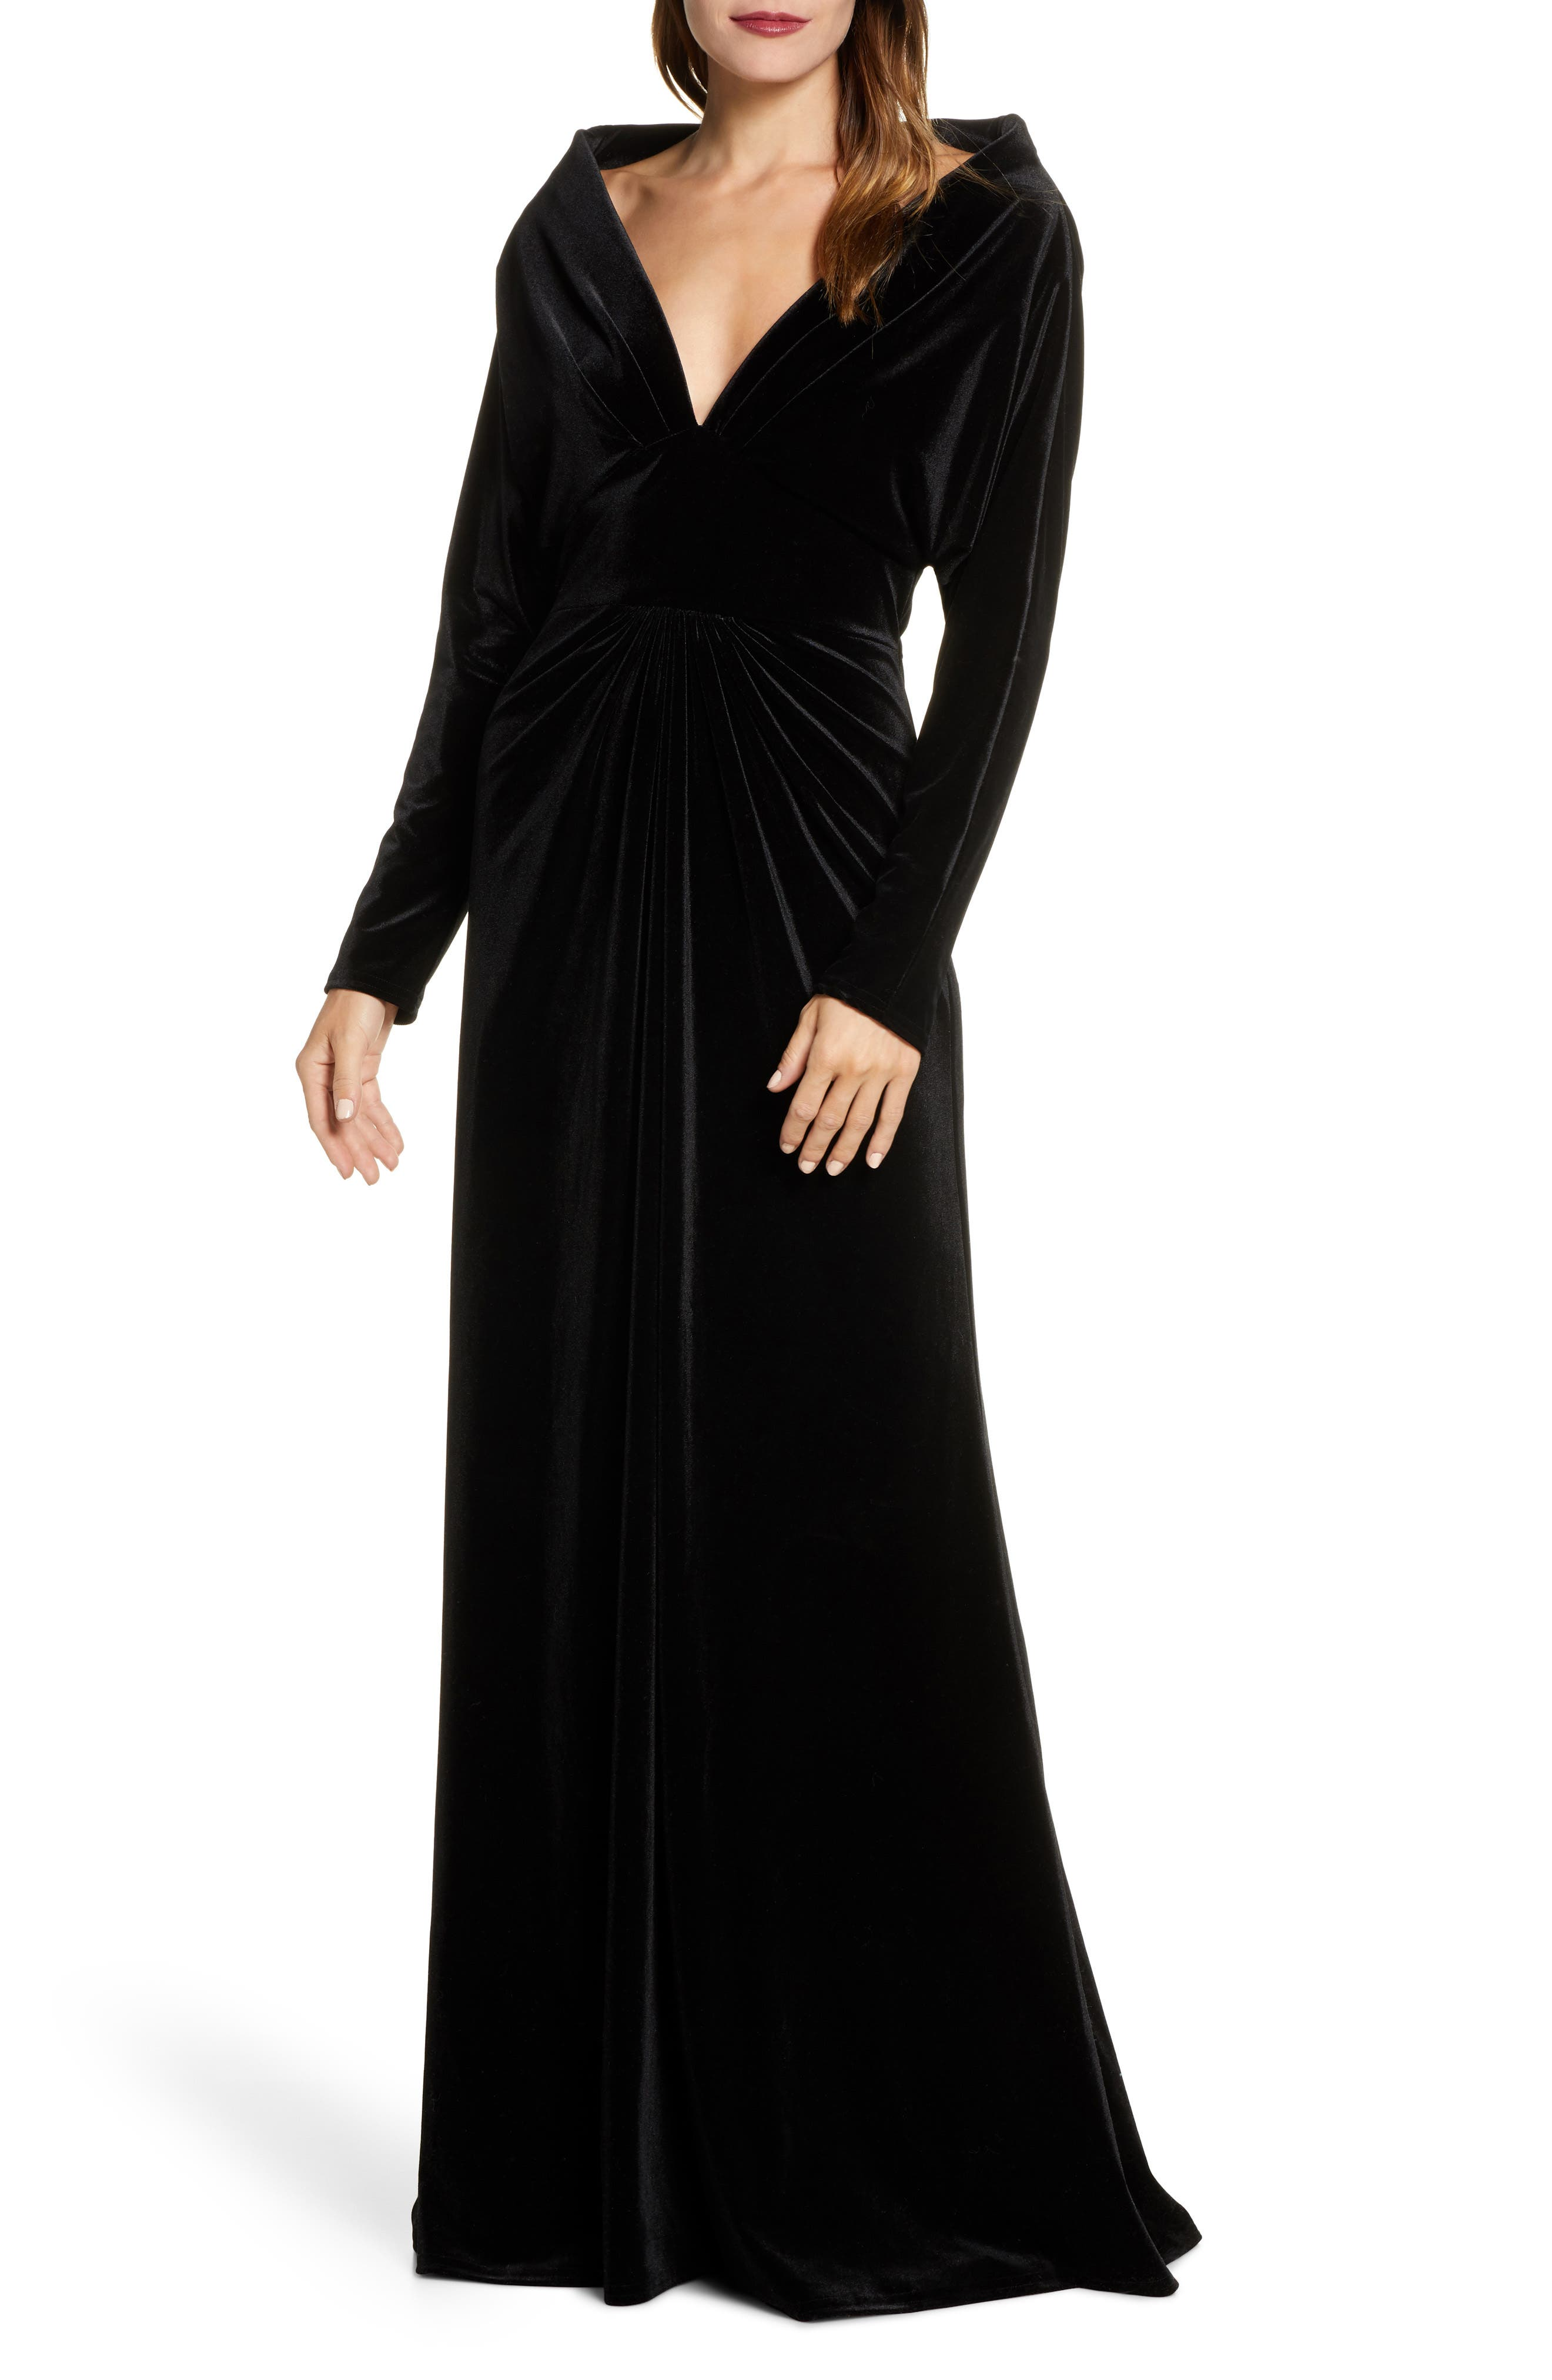 1950s History of Prom, Party, and Formal Dresses Womens Tadashi Shoji Plunge Neck Long Sleeve Velvet Evening Gown $398.00 AT vintagedancer.com